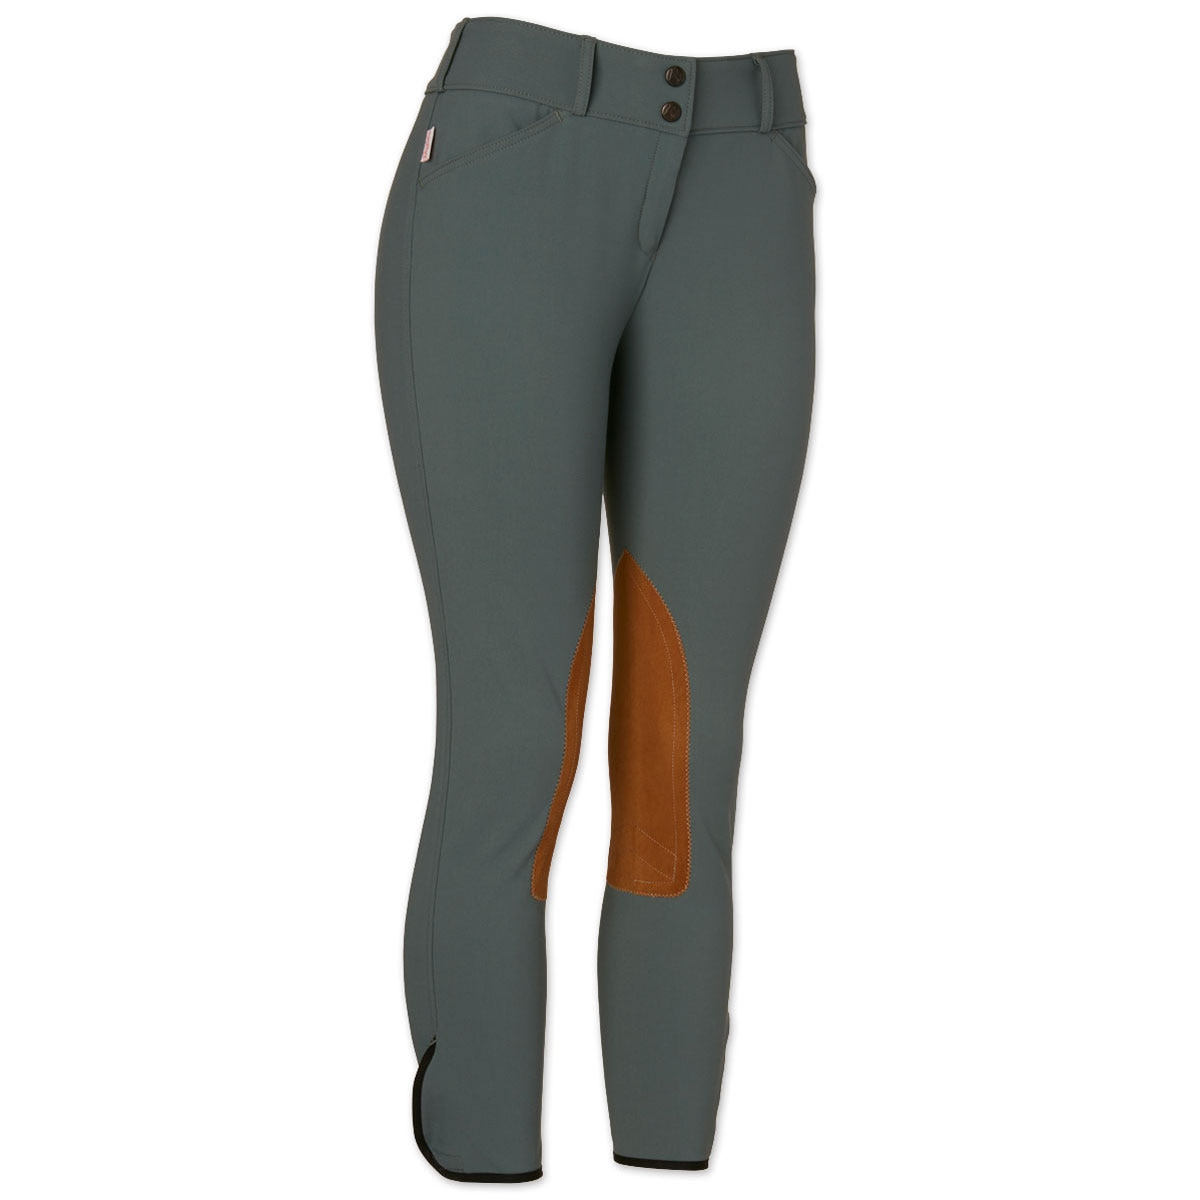 The Tailored Sportsman Contrast Patch Trophy Hunter